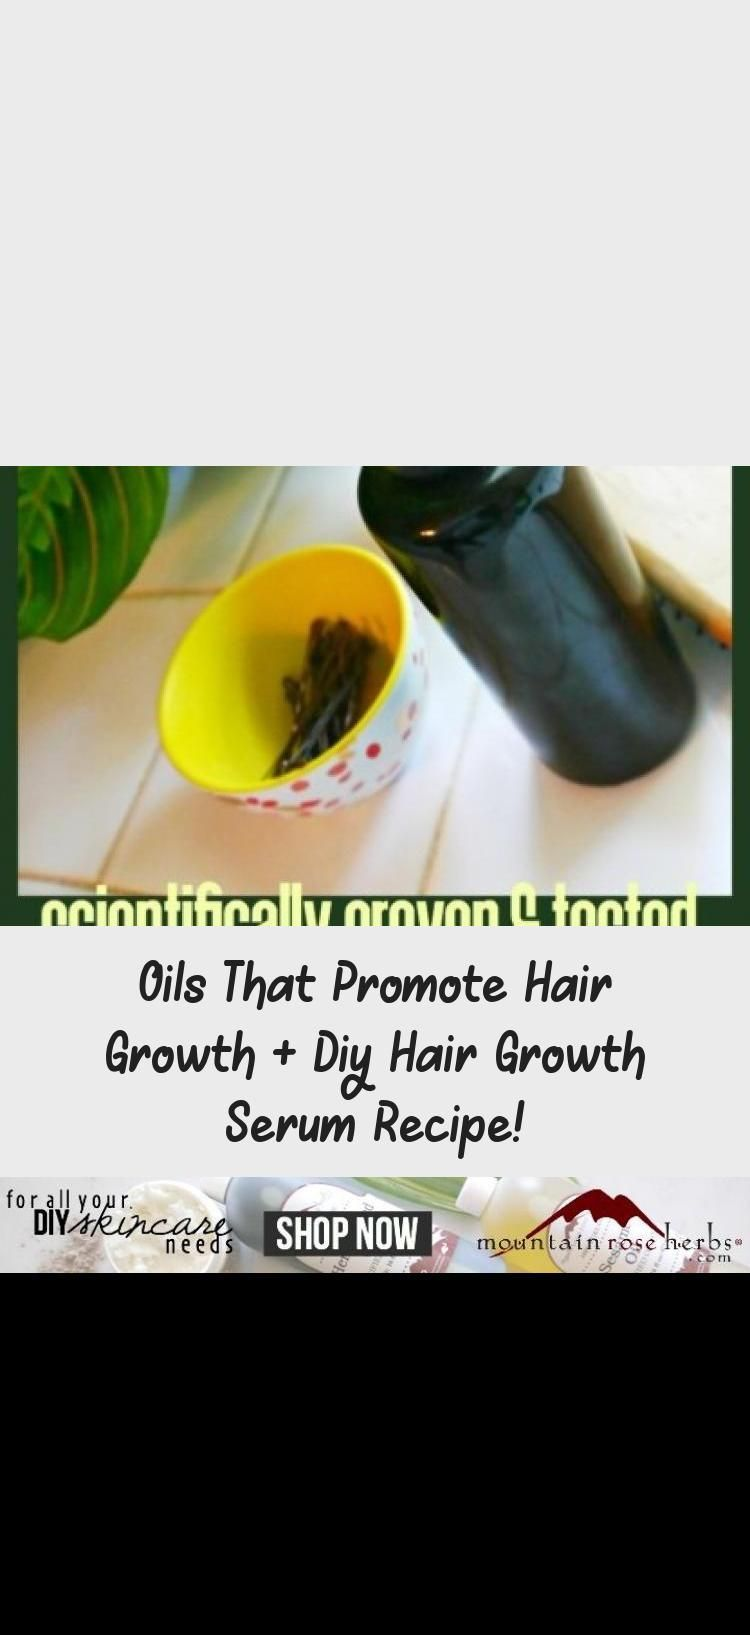 Oils That Promote Hair Growth + Diy Hair Growth Serum Recipe! -  Oils that Promote Hair Growth + DIY Hair Growth Serum Recipe! – Jenni Raincloud #hairgrowthChallenge #hairgrowthStages #Eyebrowhairgrowth #hai  - #castoroilforHairGrowth #HairGrowth #HairGrowthafricanamerican #HairGrowthbeforeandafter #HairGrowthchart #HairGrowthdiy #HairGrowthfaster #HairGrowthinaweek #HairGrowthmask #HairGrowthonion #HairGrowthproducts #HairGrowthshampoo #HairGrowthsuperfast #HairGrowththicker #HairGrowthtips #H